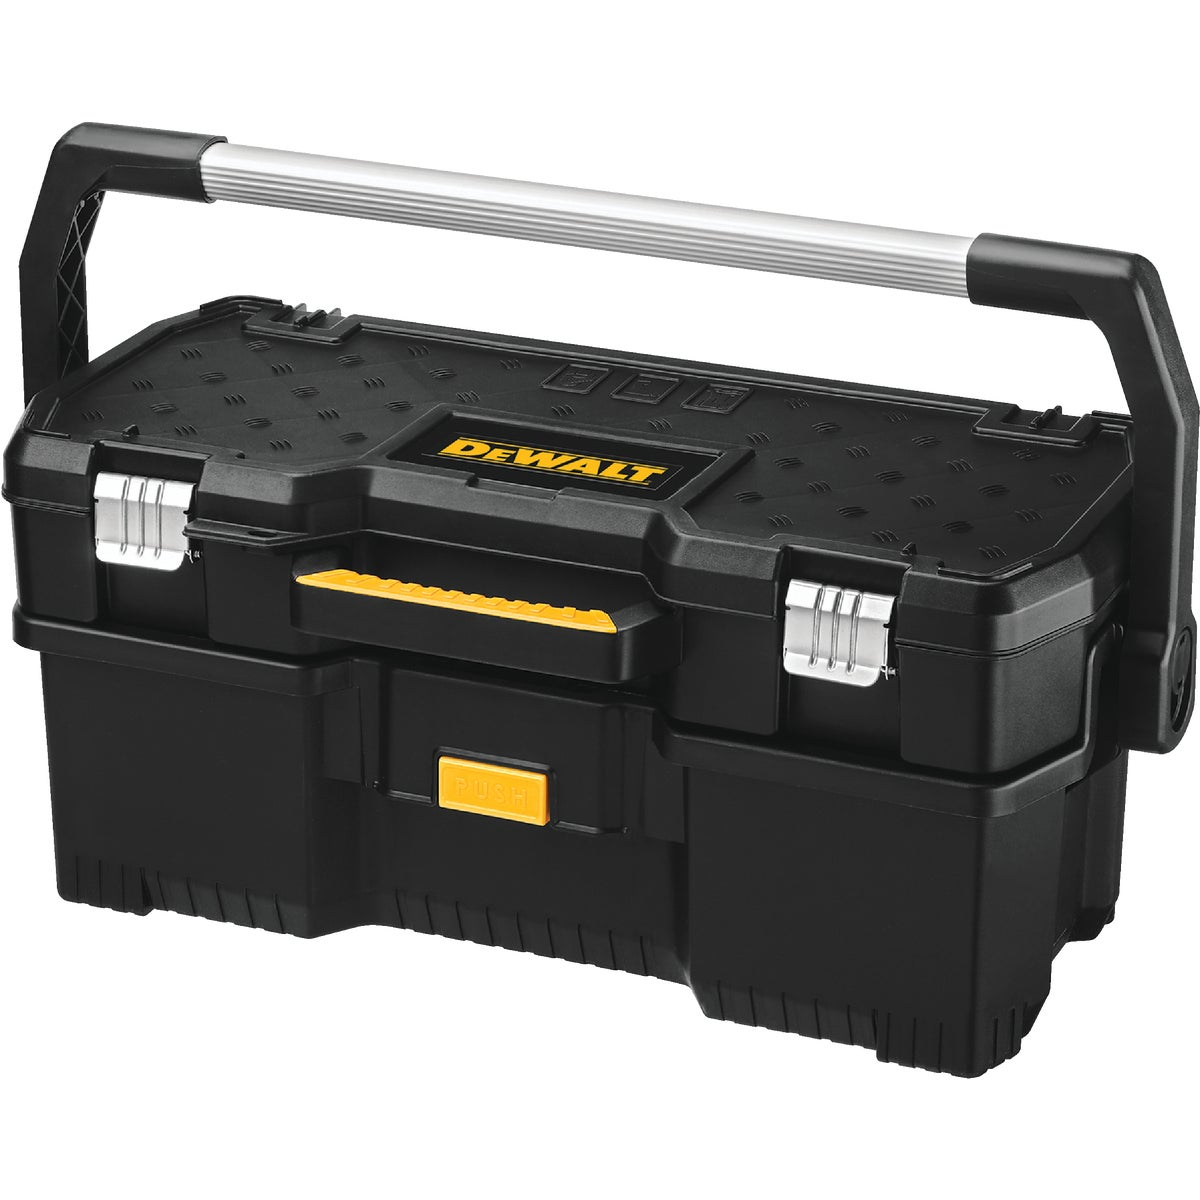 "24"" TOOL BOX - DWST24070 by Stanley Tools"